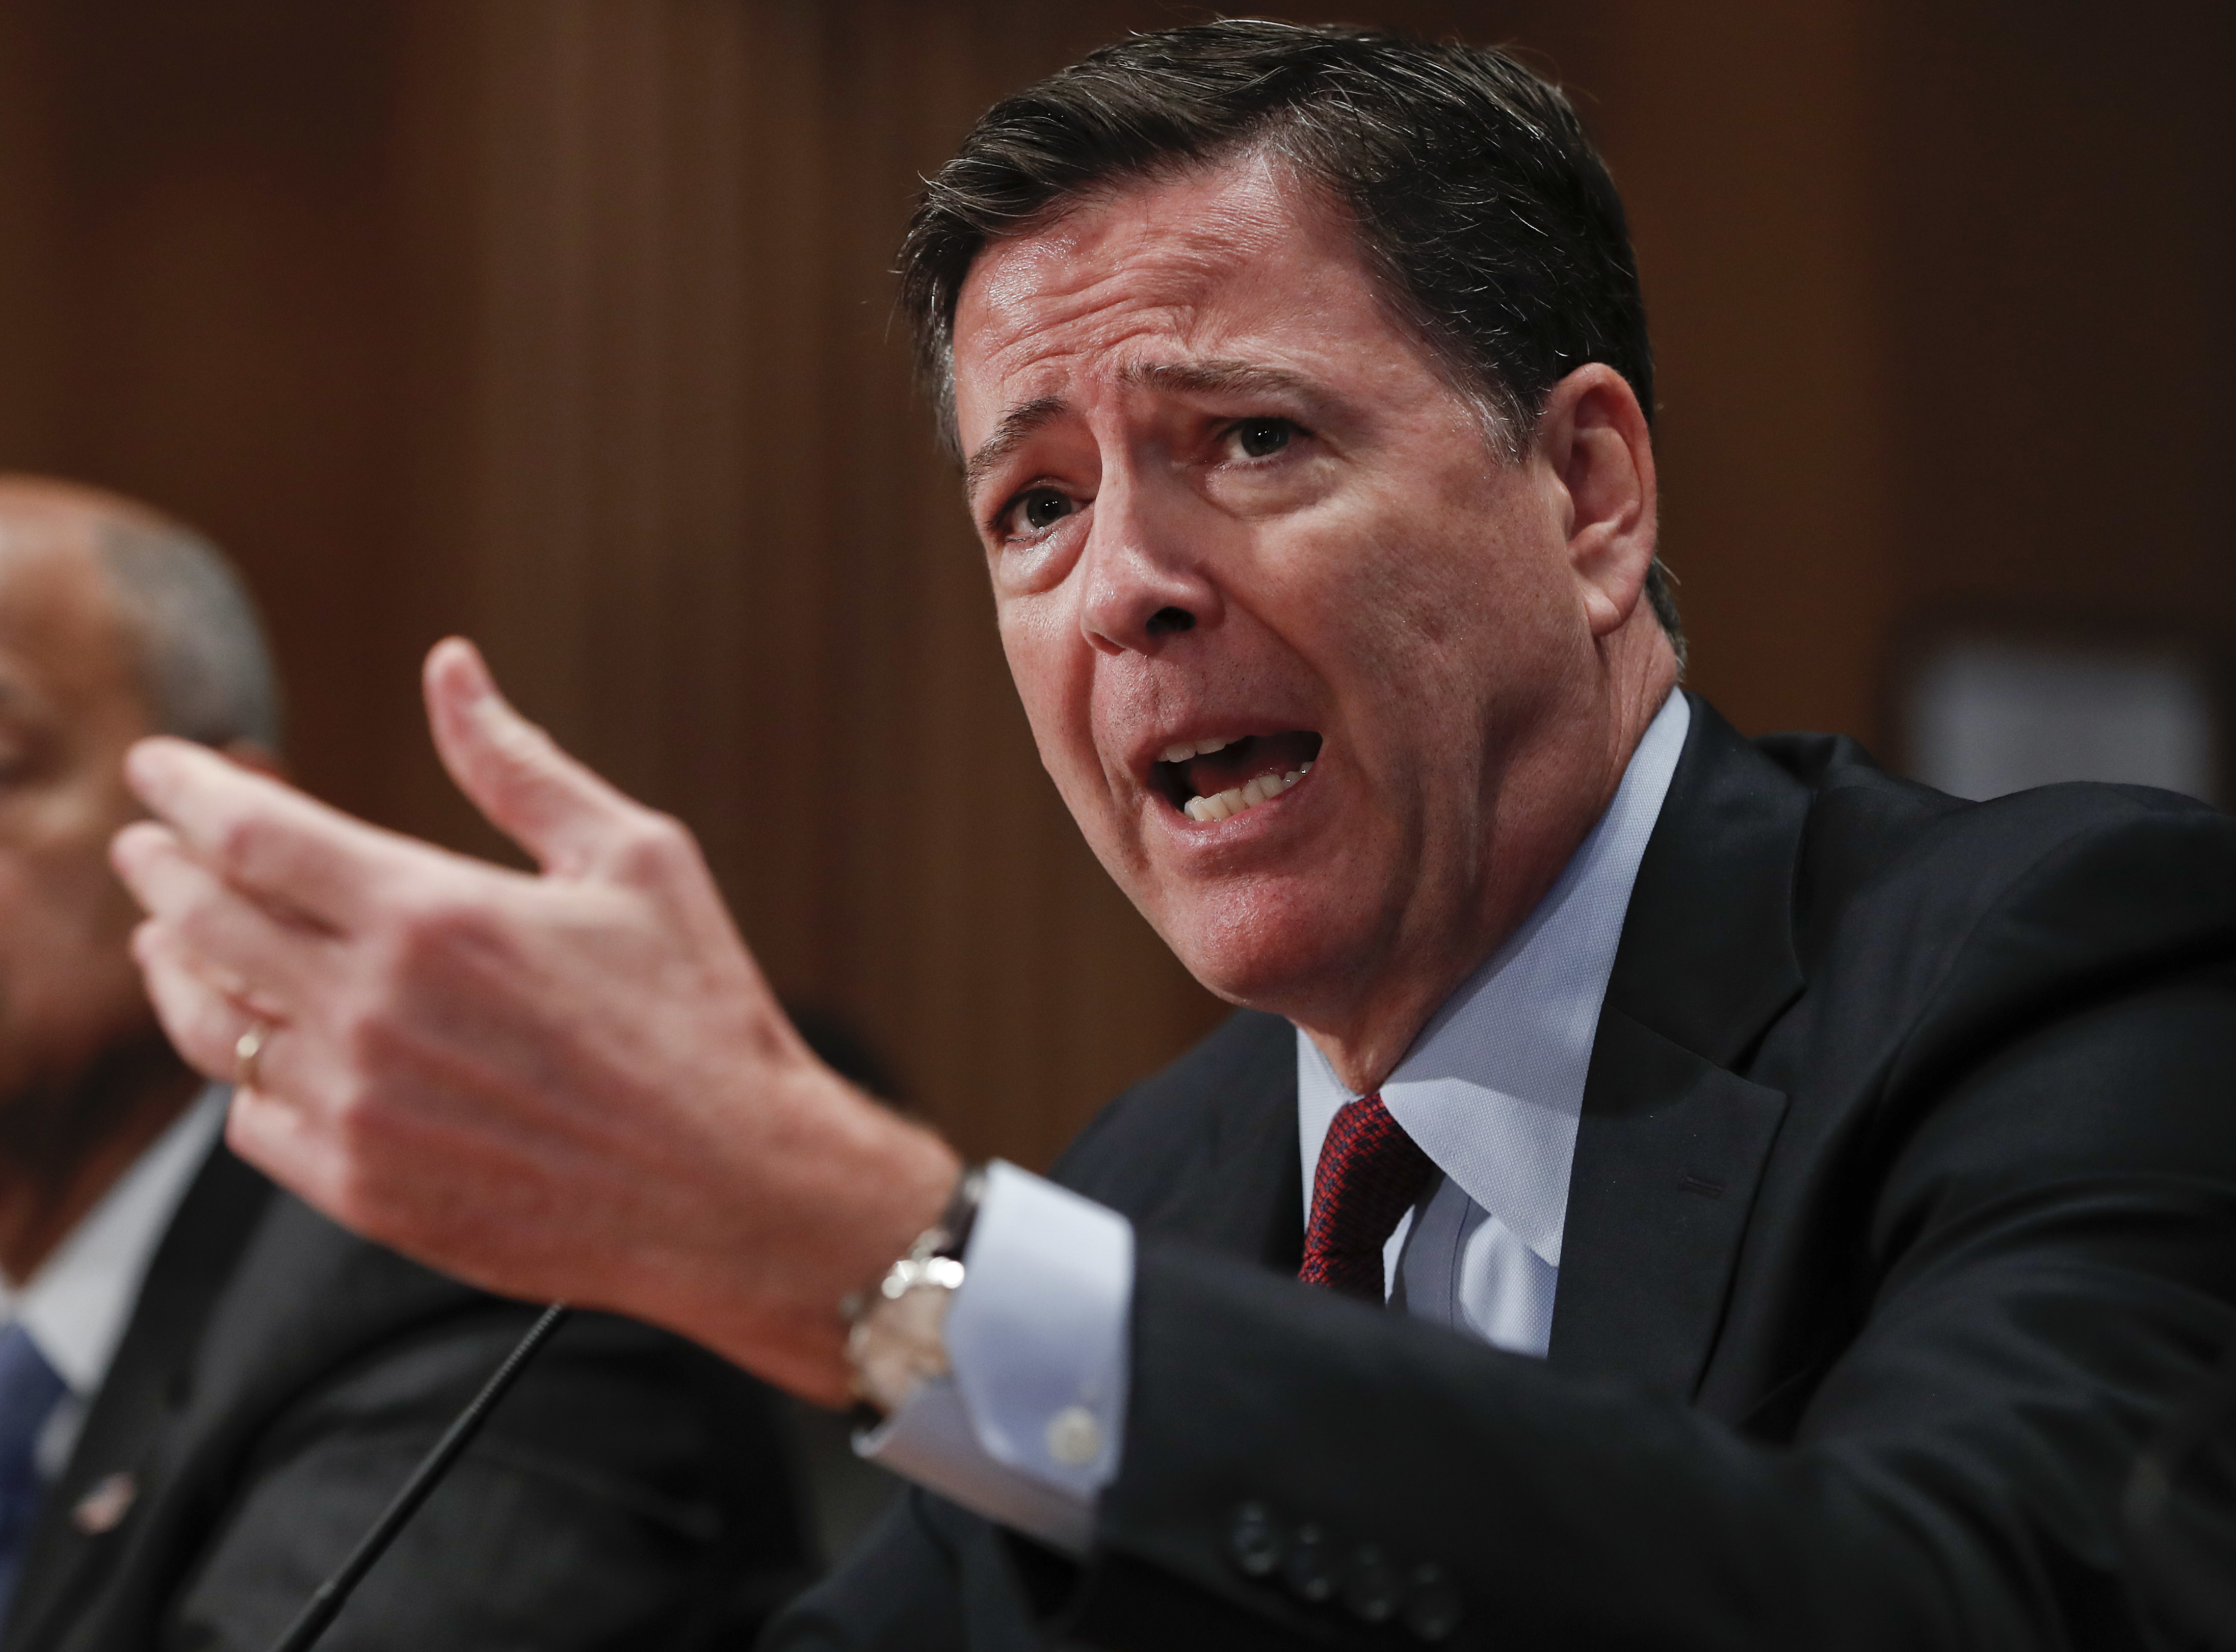 White House Says FBI Director Isn't Trying to Influence Election